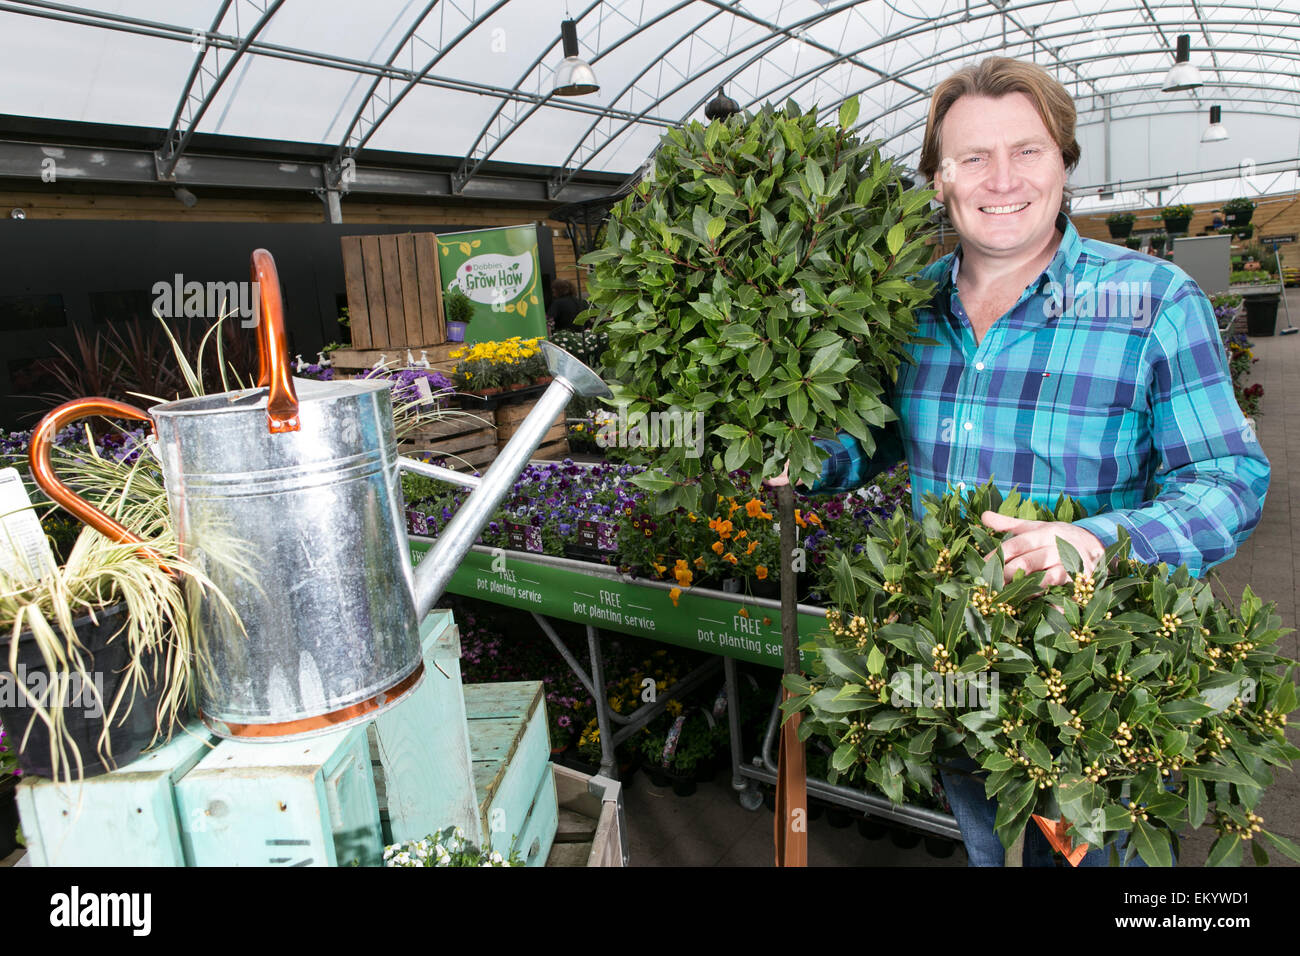 Celebrity David Domoney jardinier à ratières Garden Centre, Speke Hall Avenue, Liverpool. Photo Stock